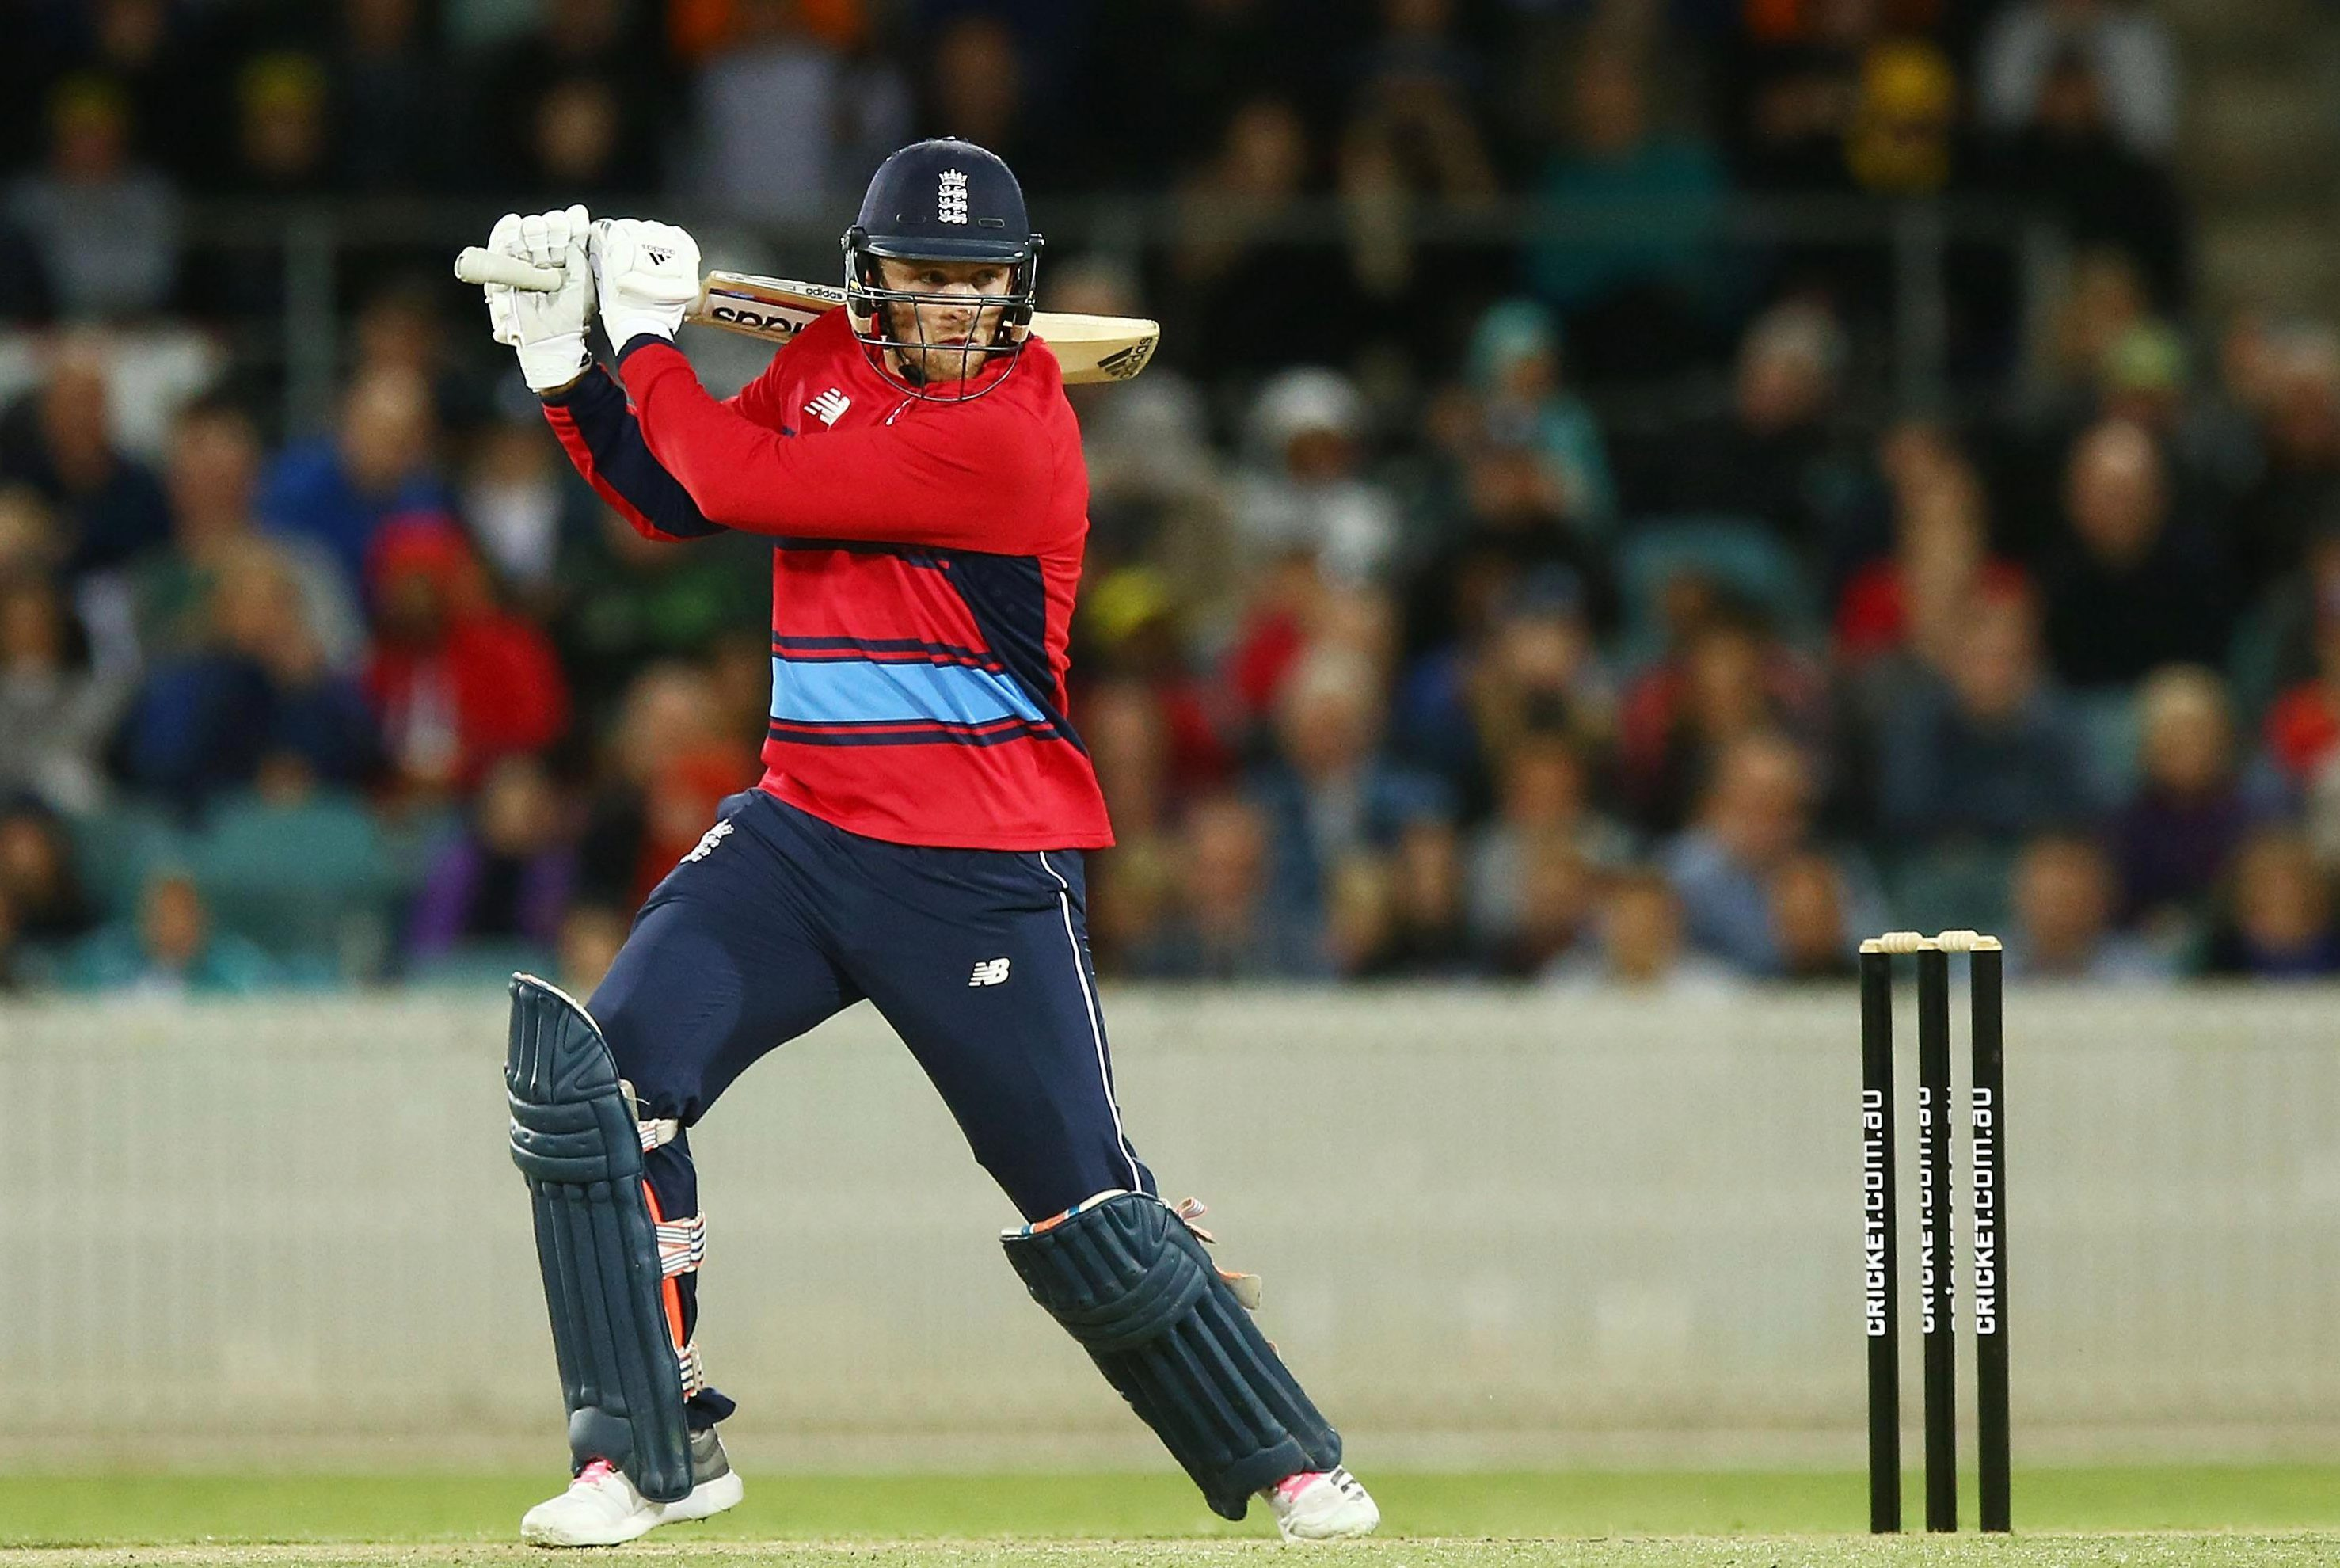 The England star nearly hit six sixes in a single over